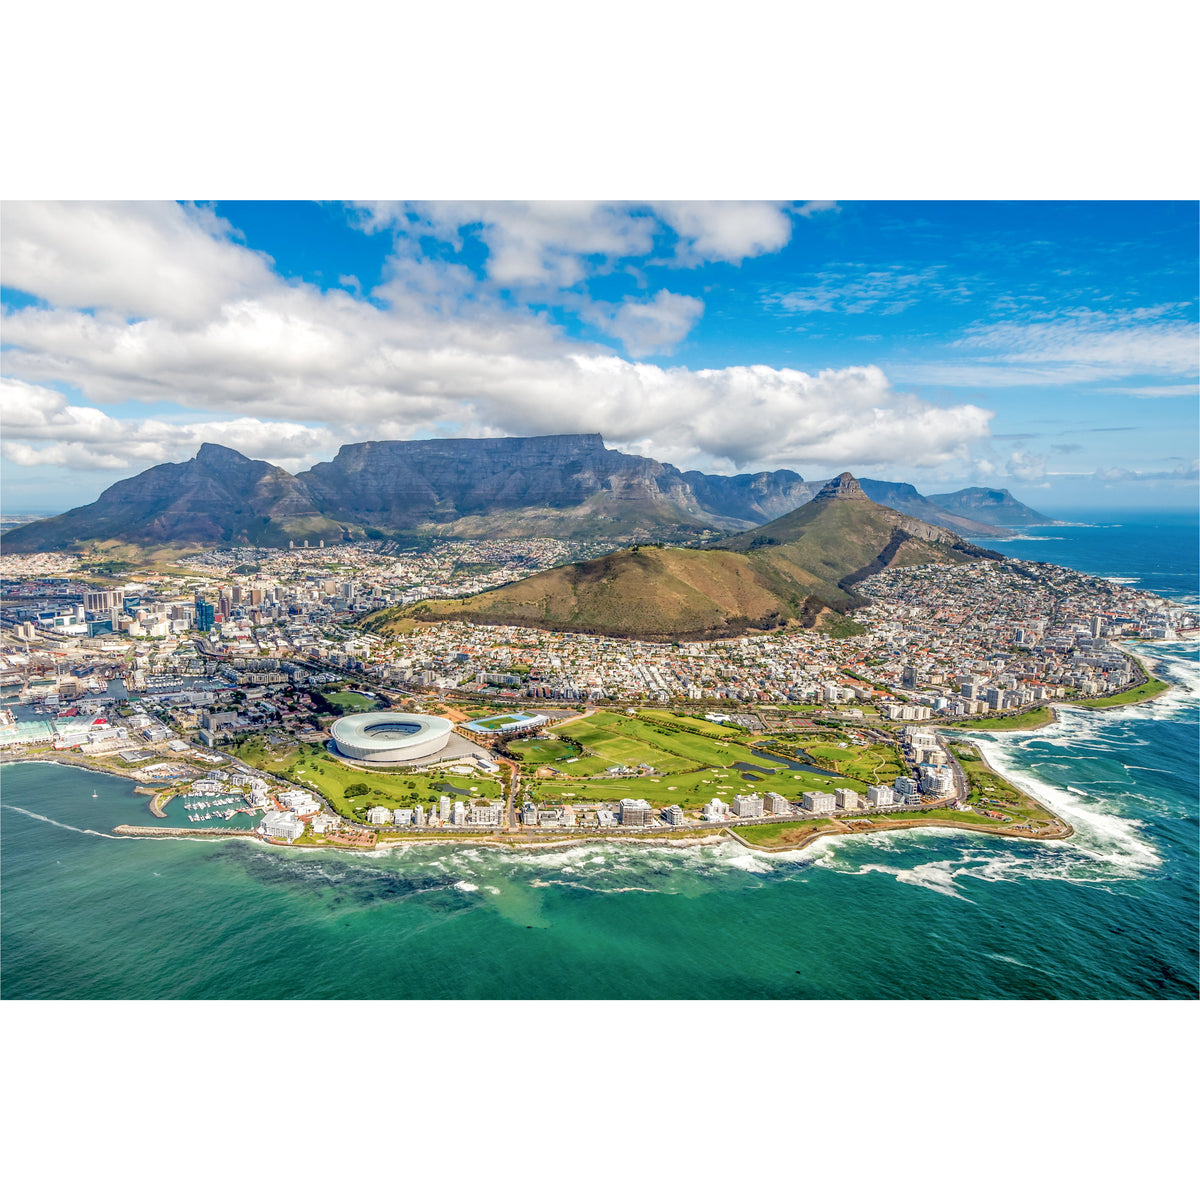 Iconic Cape Town